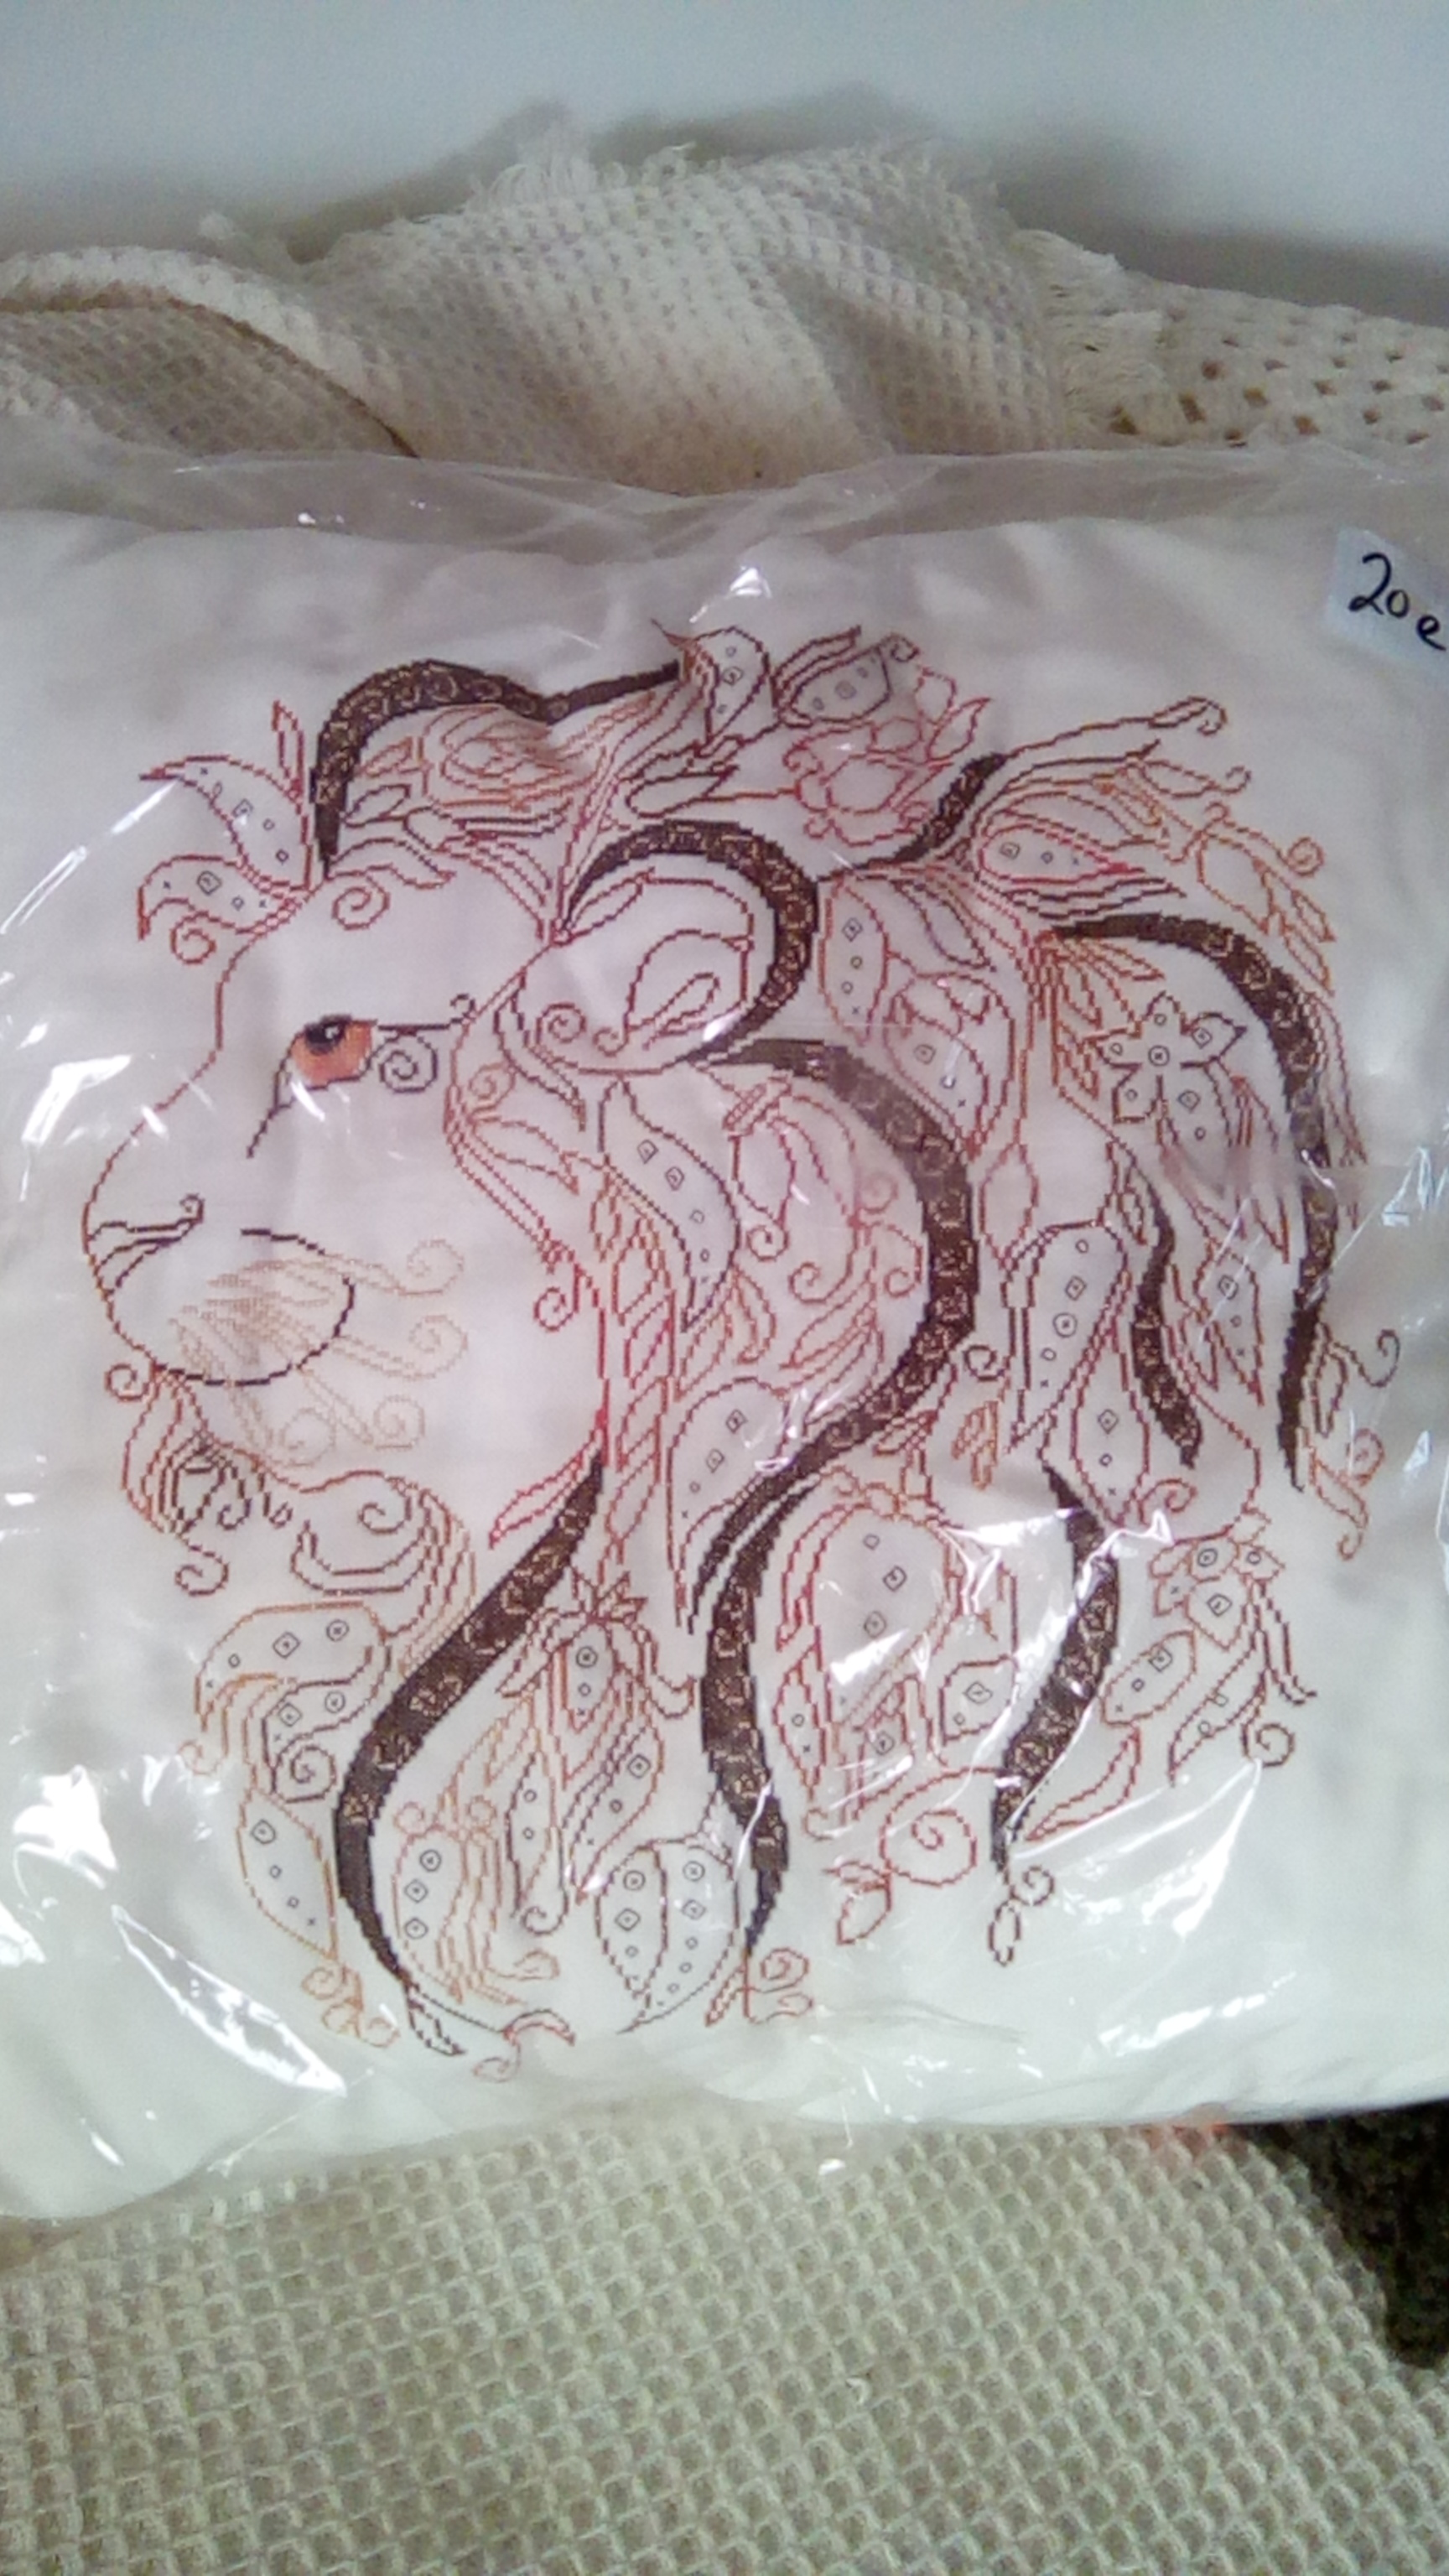 For sale: Lion cushion - Buy and sell items in Sorbas